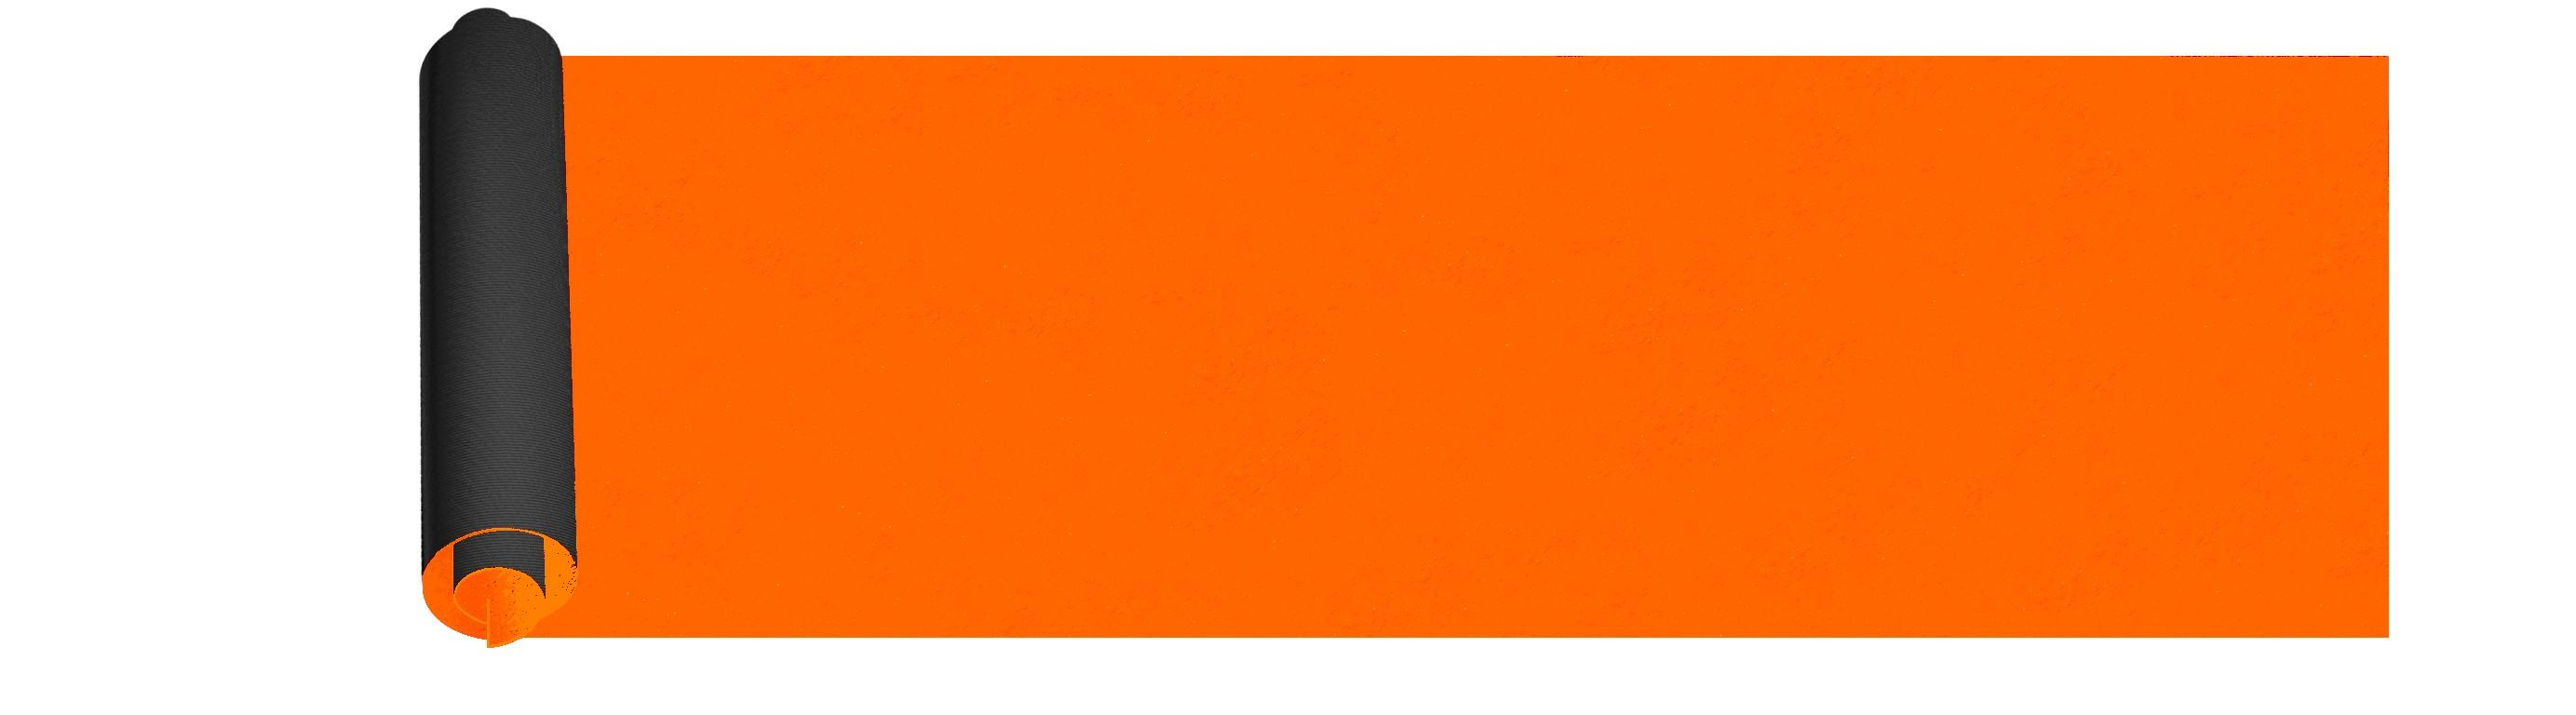 Fantastic Orange